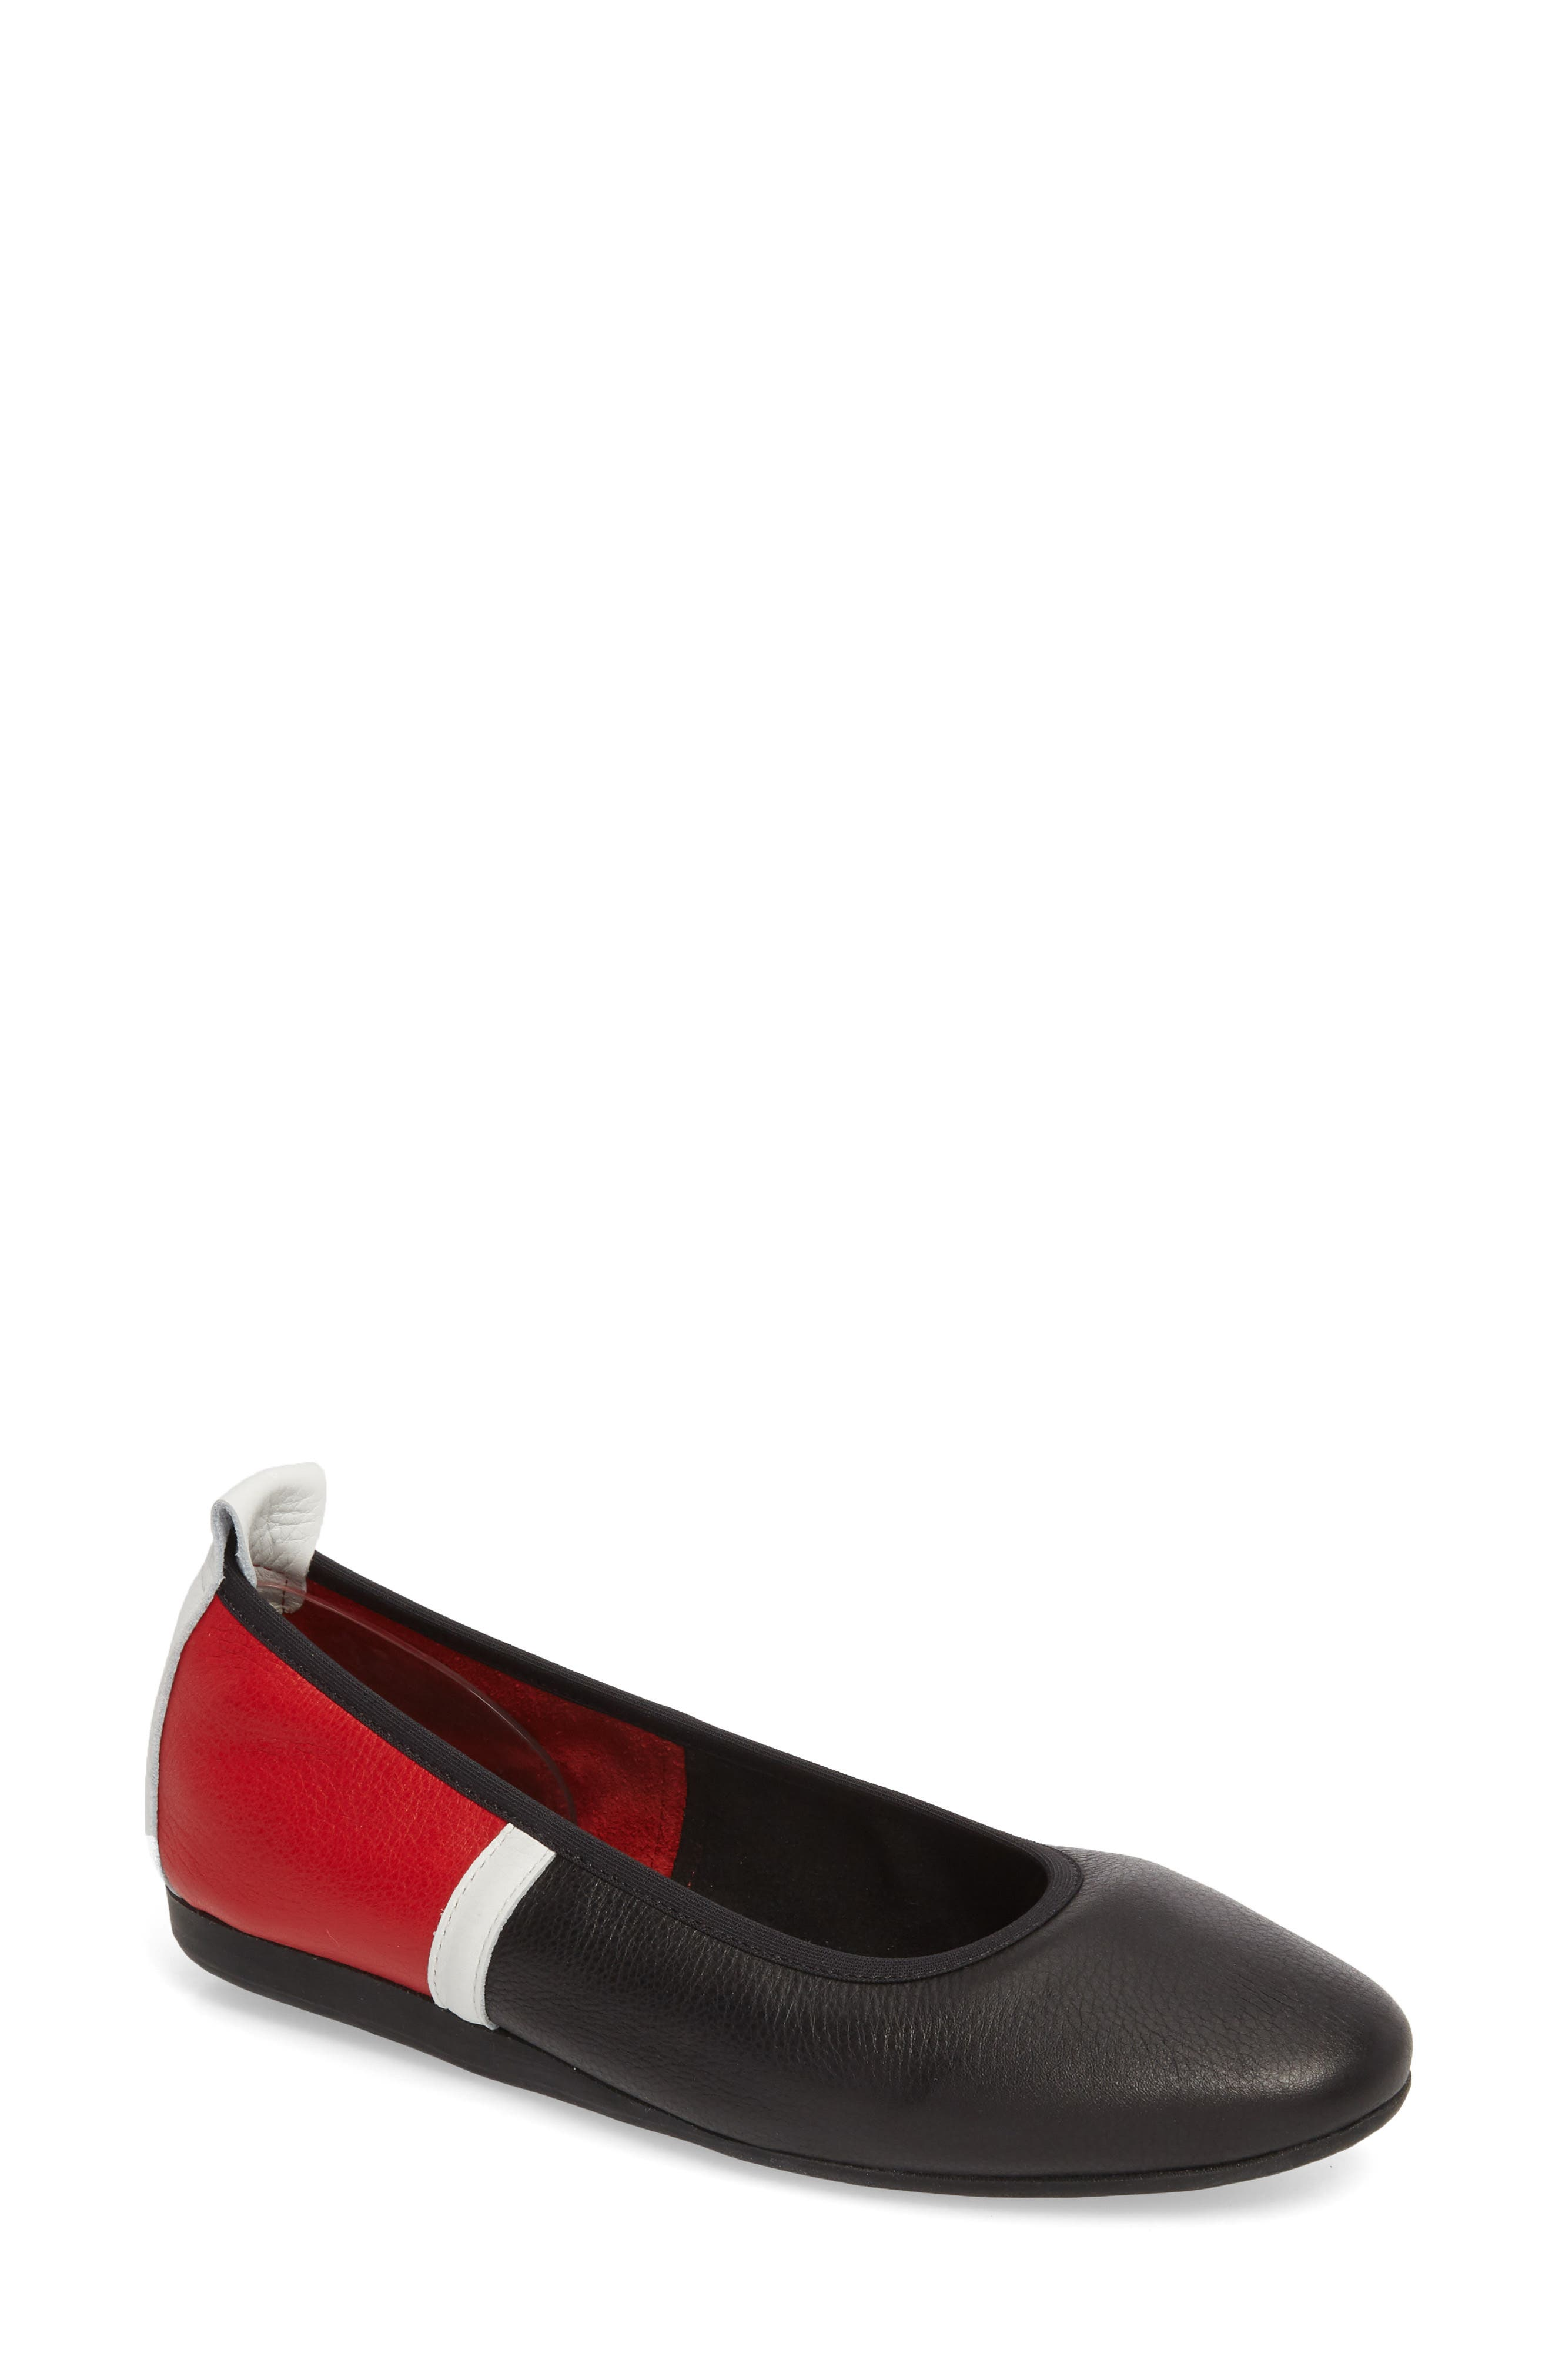 Lamour Rocky Colorblock Flat,                             Main thumbnail 1, color,                             600